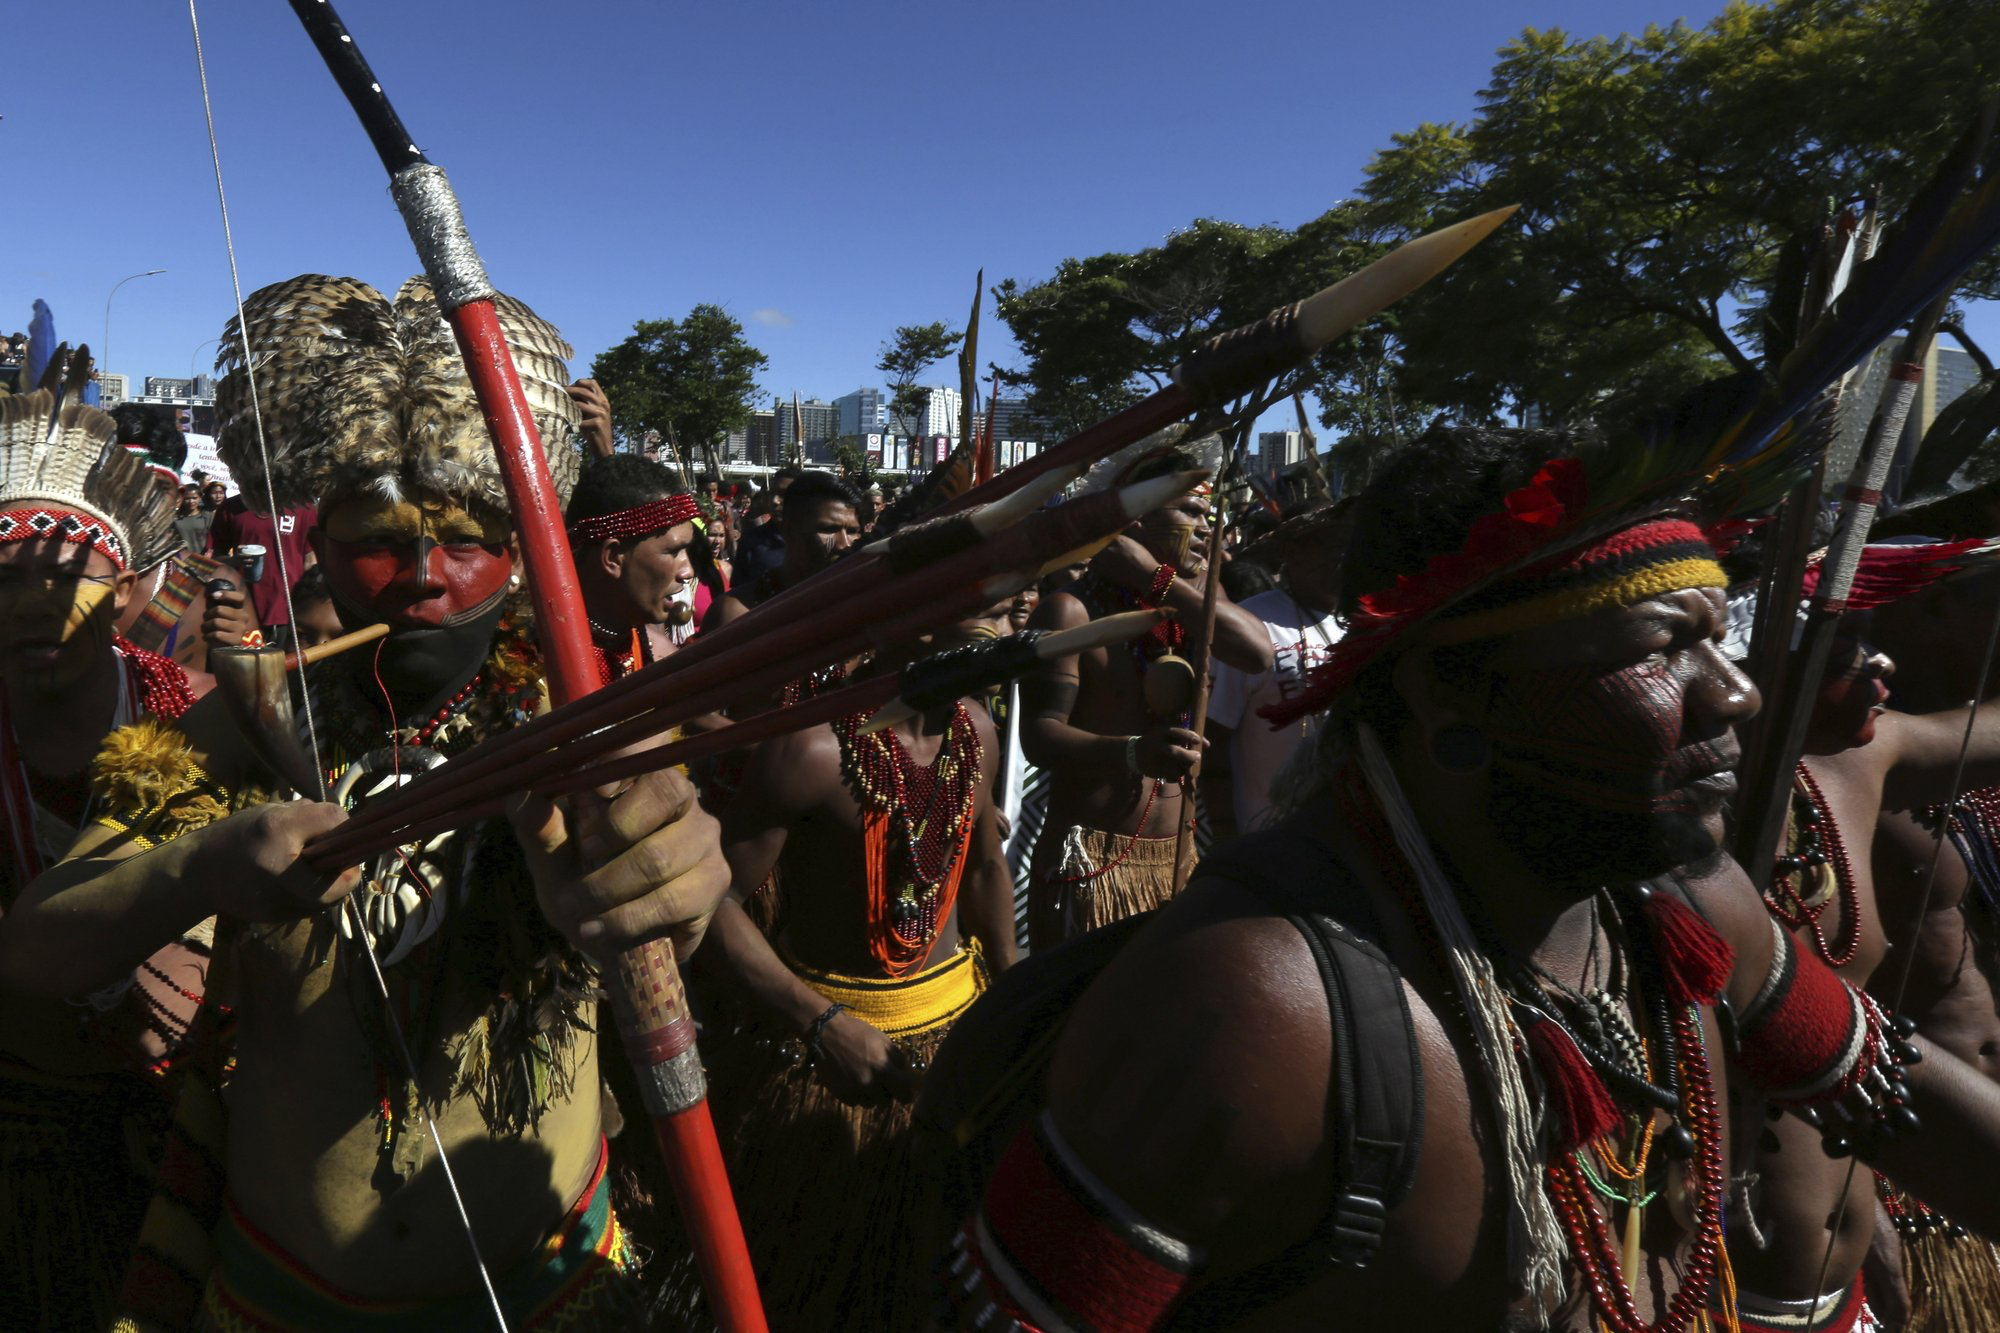 Indigenous Pataxo men carry their weapons during the Free Land Camp protest in Brasilia on Friday, April 26. The march protests the rollbacks of indigenous land and rights under Bolsonaro. Photo:  AP Photo /Eraldo Peres.